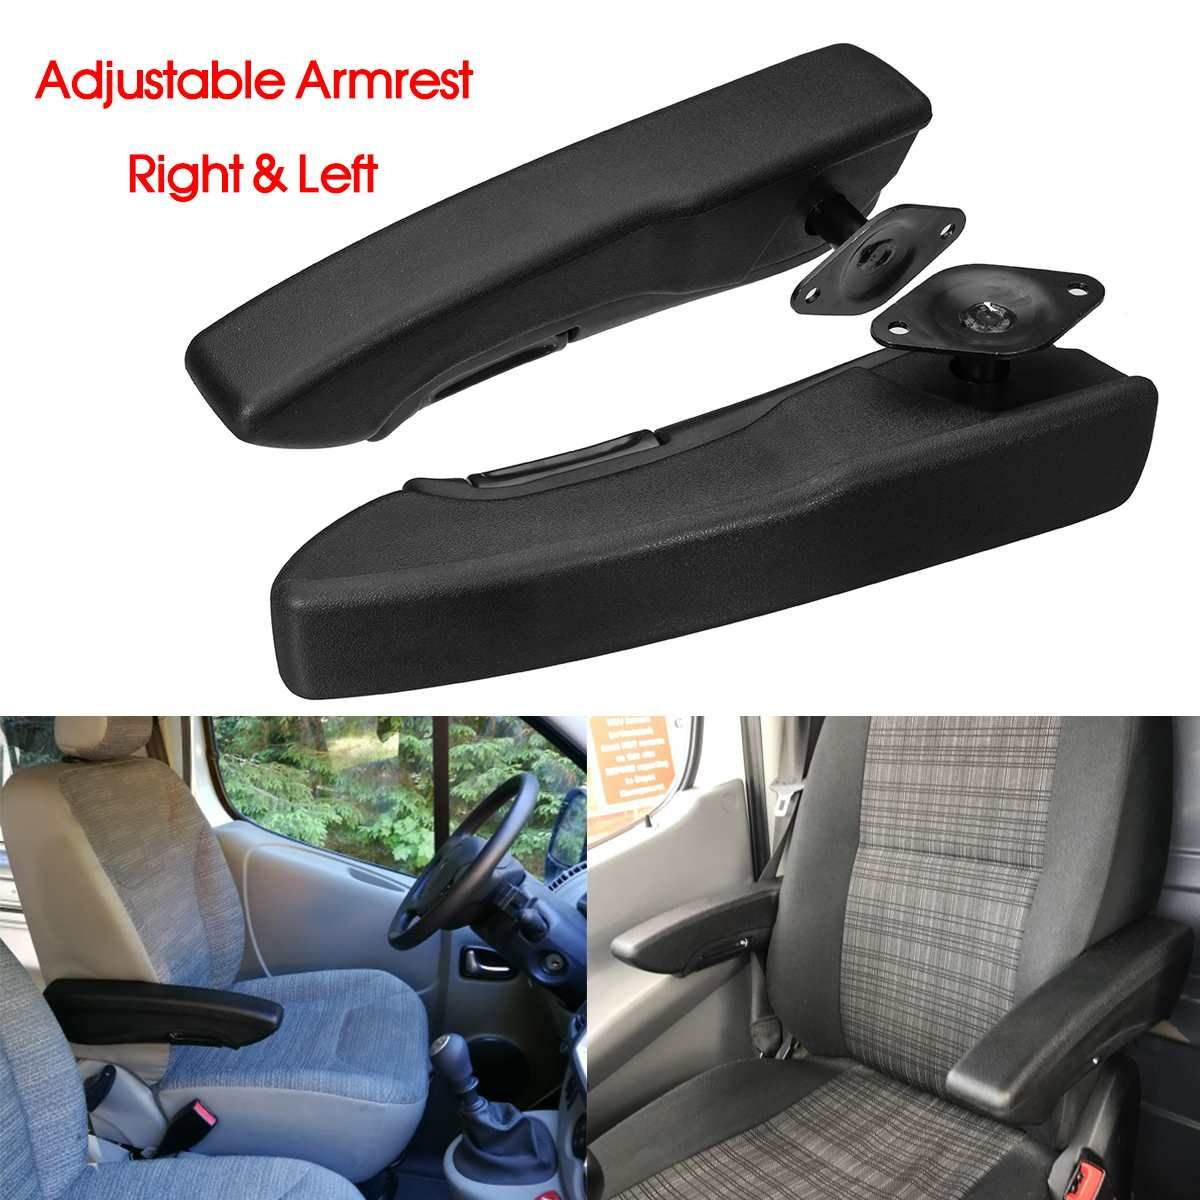 Universal Left/Right Side Adjustable Seat Armrest Hand Holder For Camper RV Van Motorhome Boat